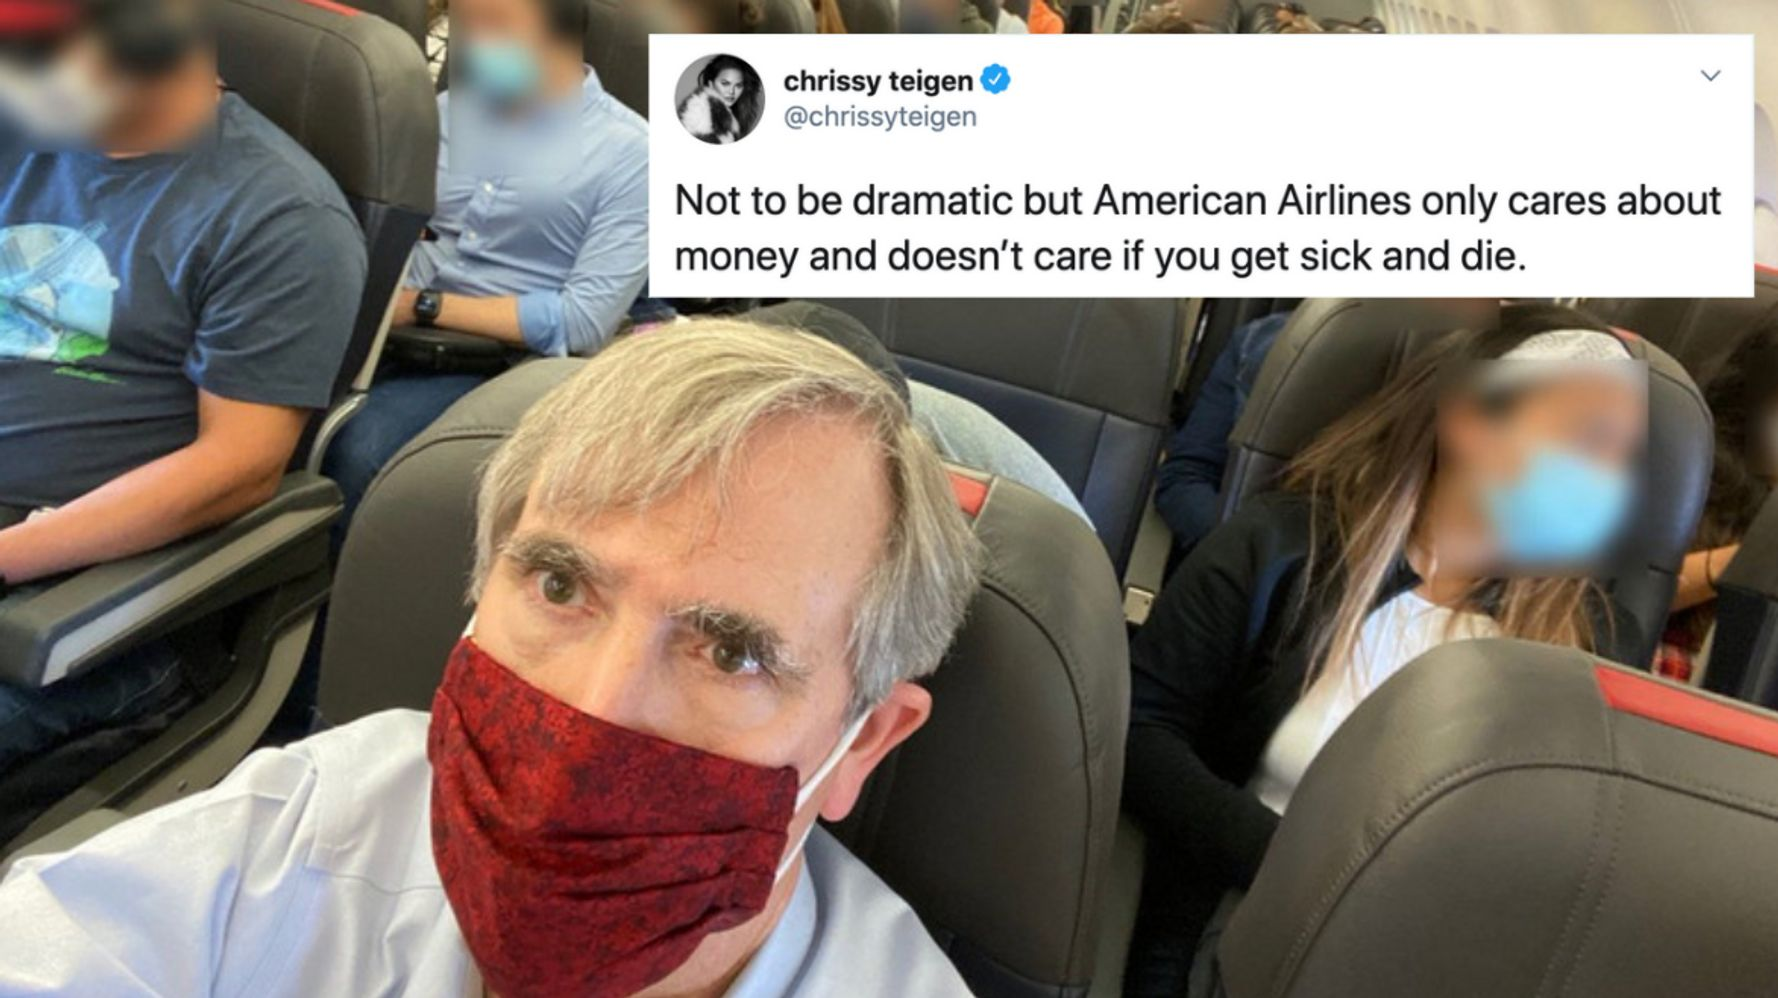 Chrissy Teigen Slams American Airlines: They Don't Care 'If You Get Sick And Die'